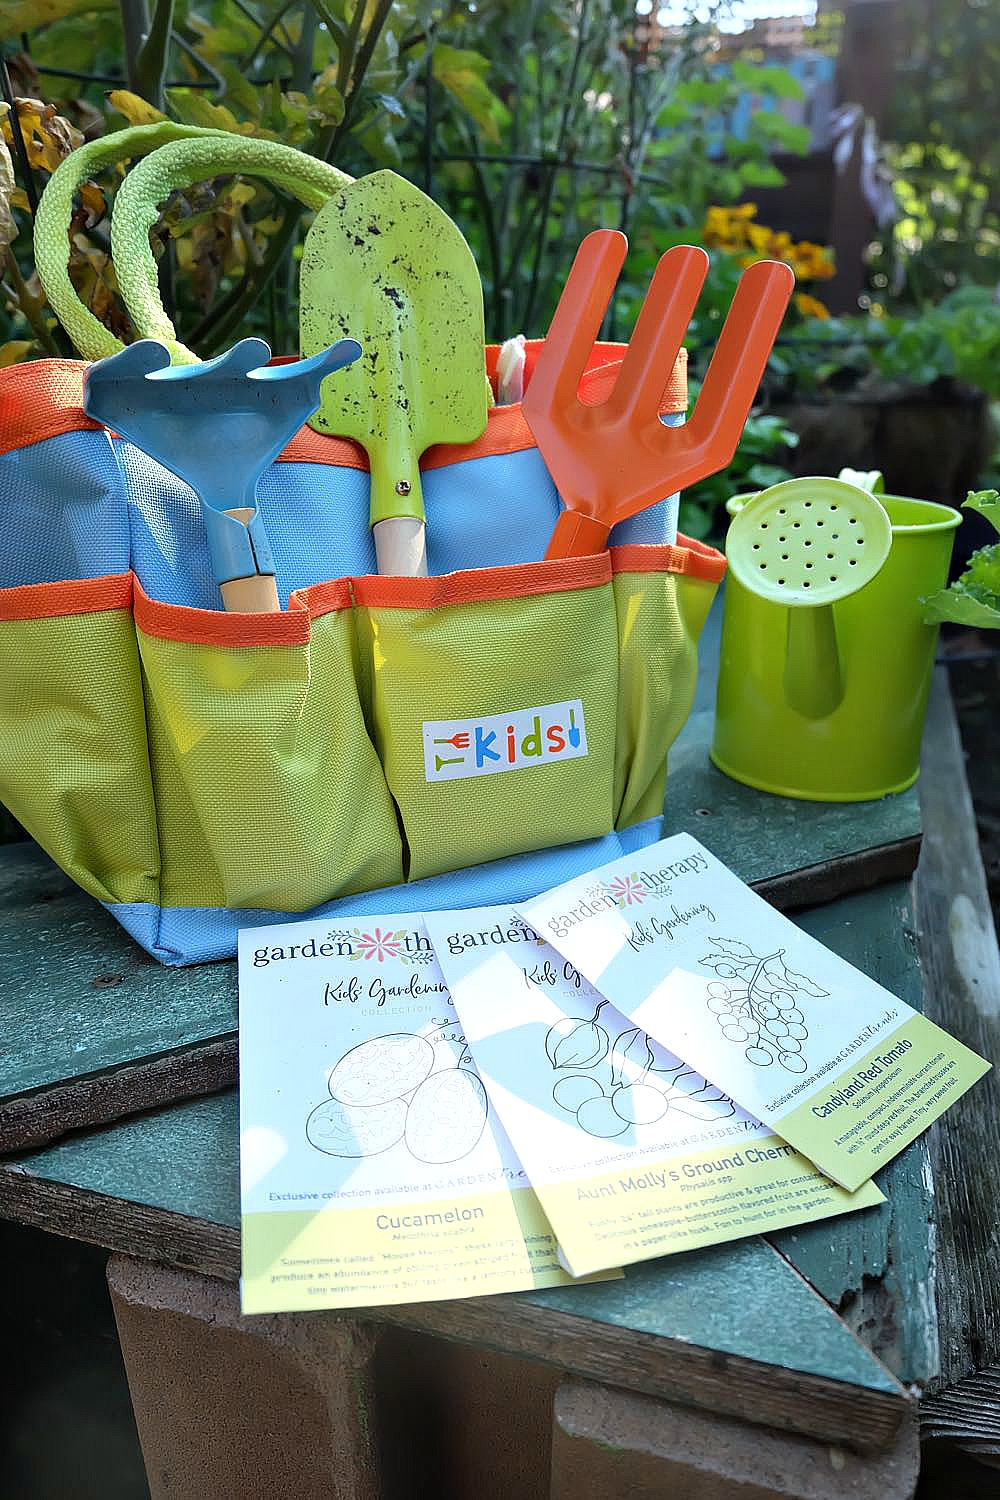 Garden Therapy's Kids' Gardening Kit is filled with fun seeds that the whole family will love. A great idea for teaching kids how to garden and where food comes from. #Gardening #KidsGardening #Seeds #GiftIdea